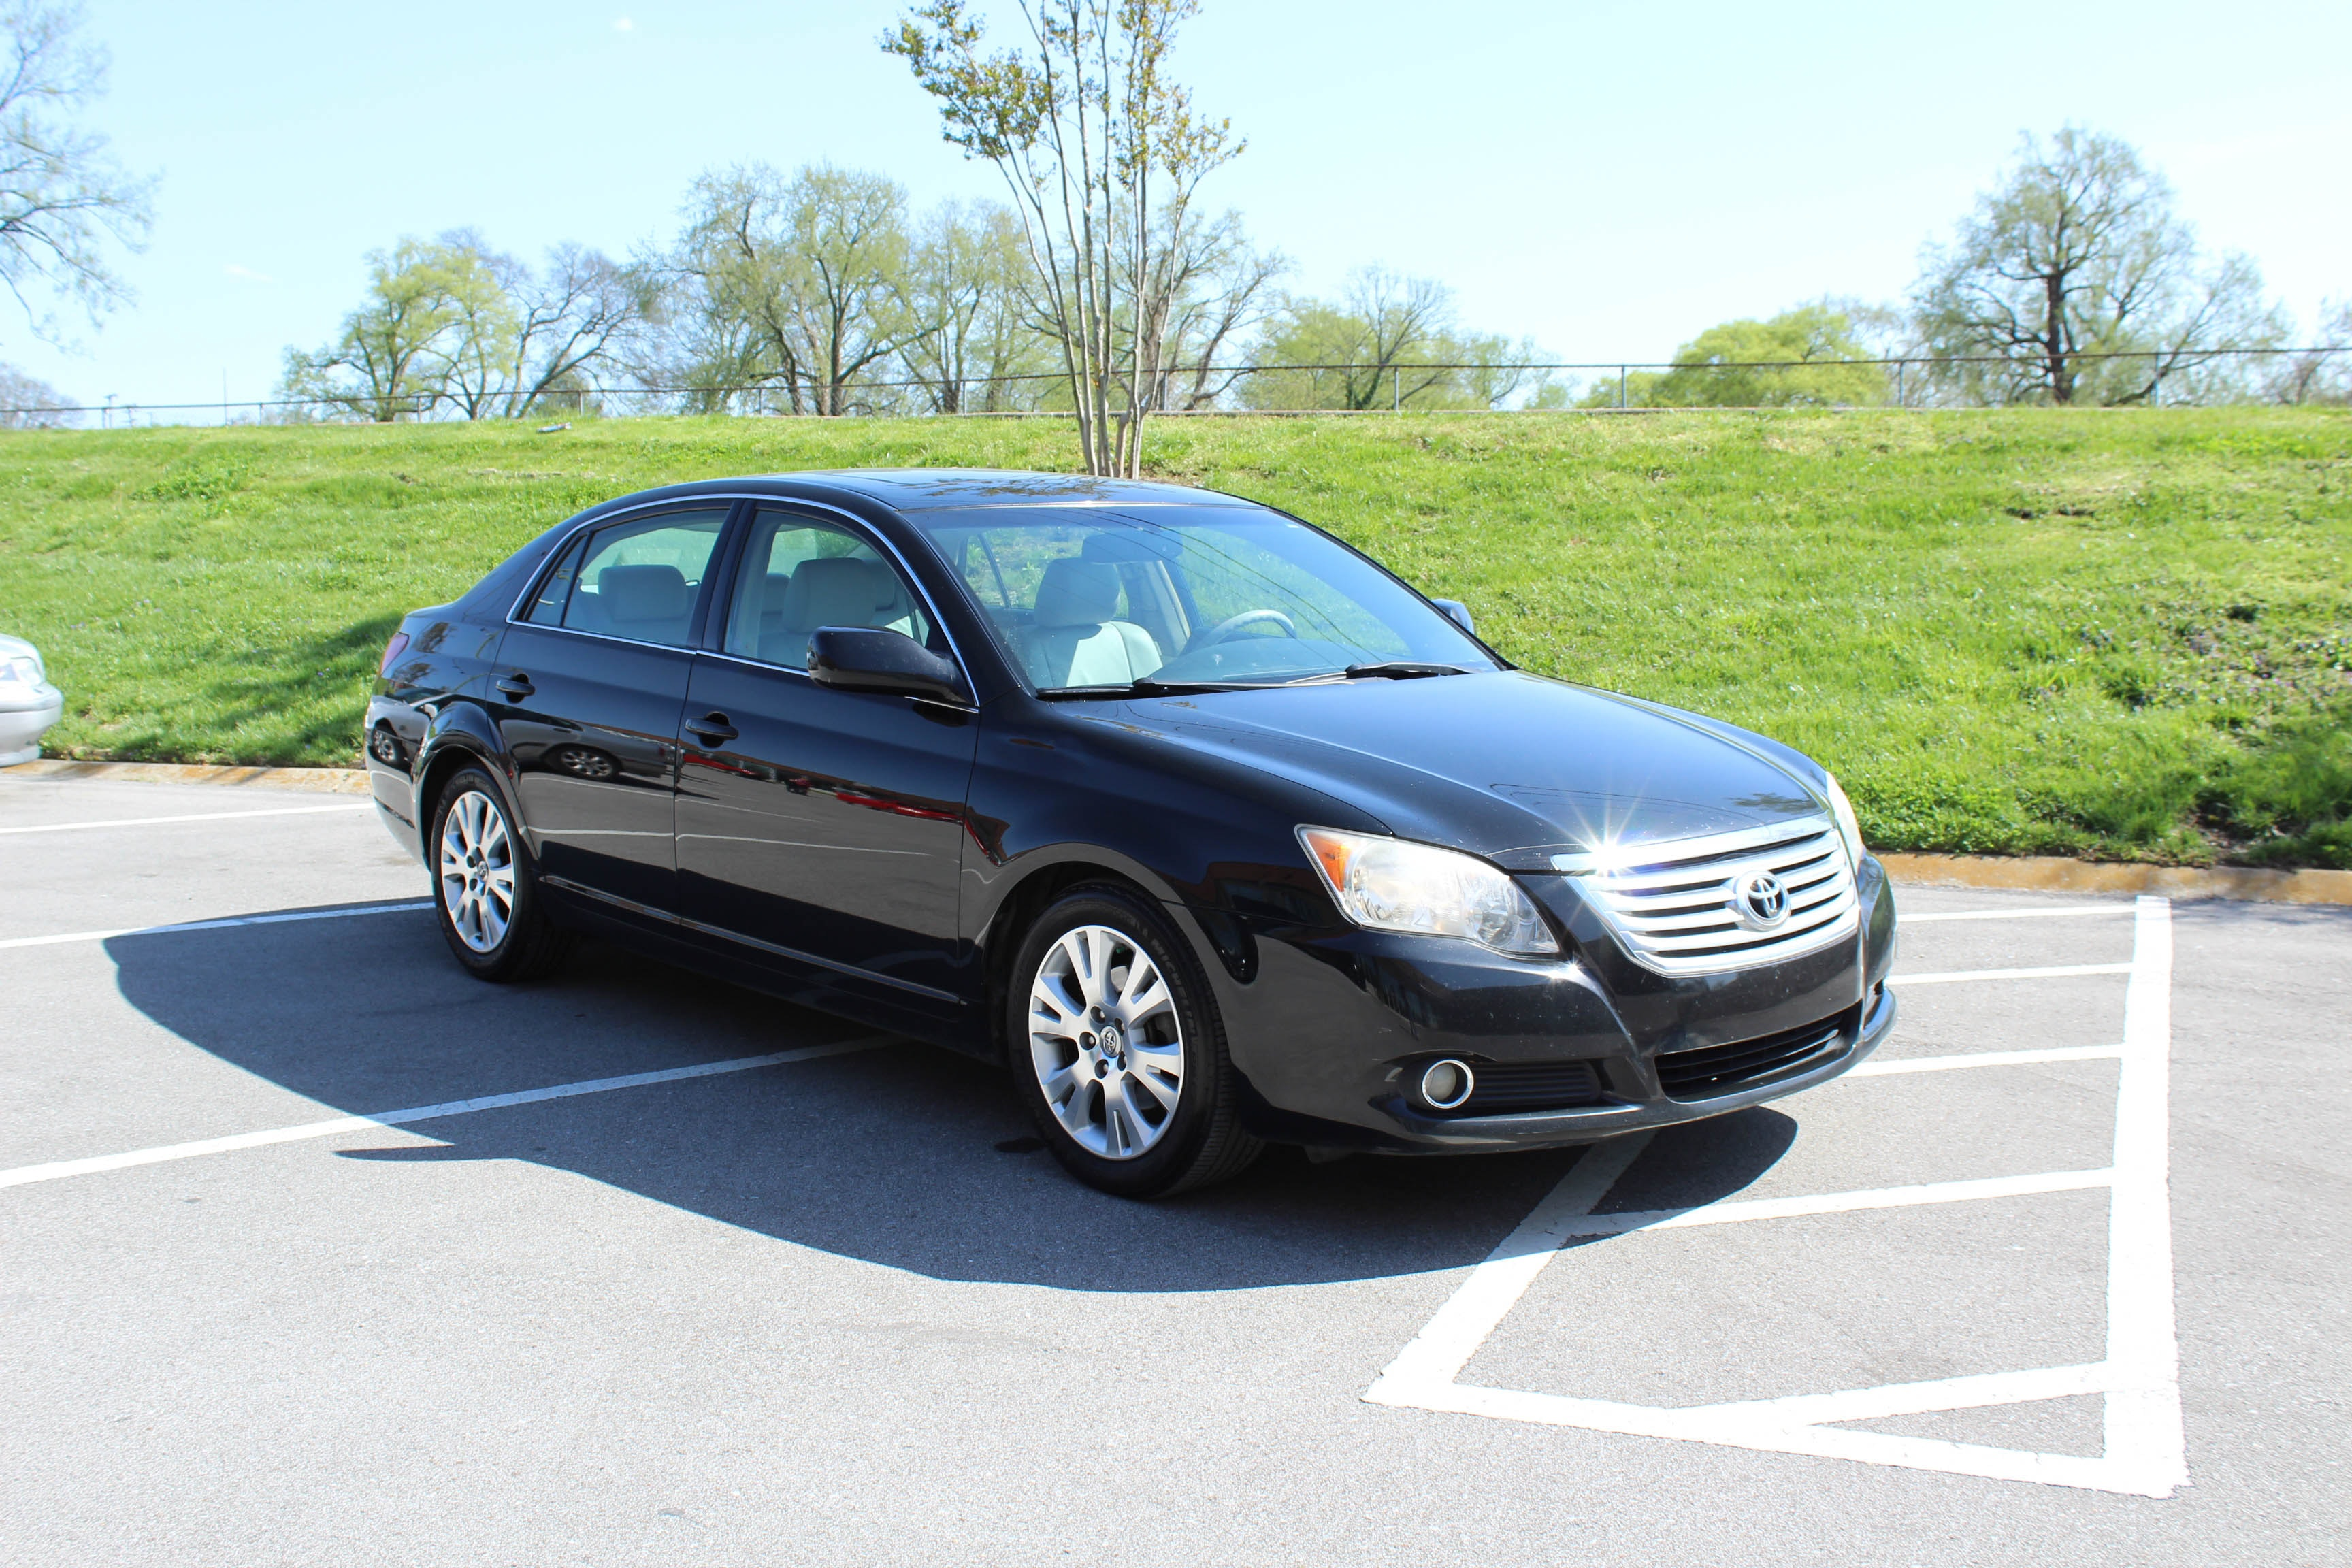 2008 Toyota Avalon XLS Luxury Sedan